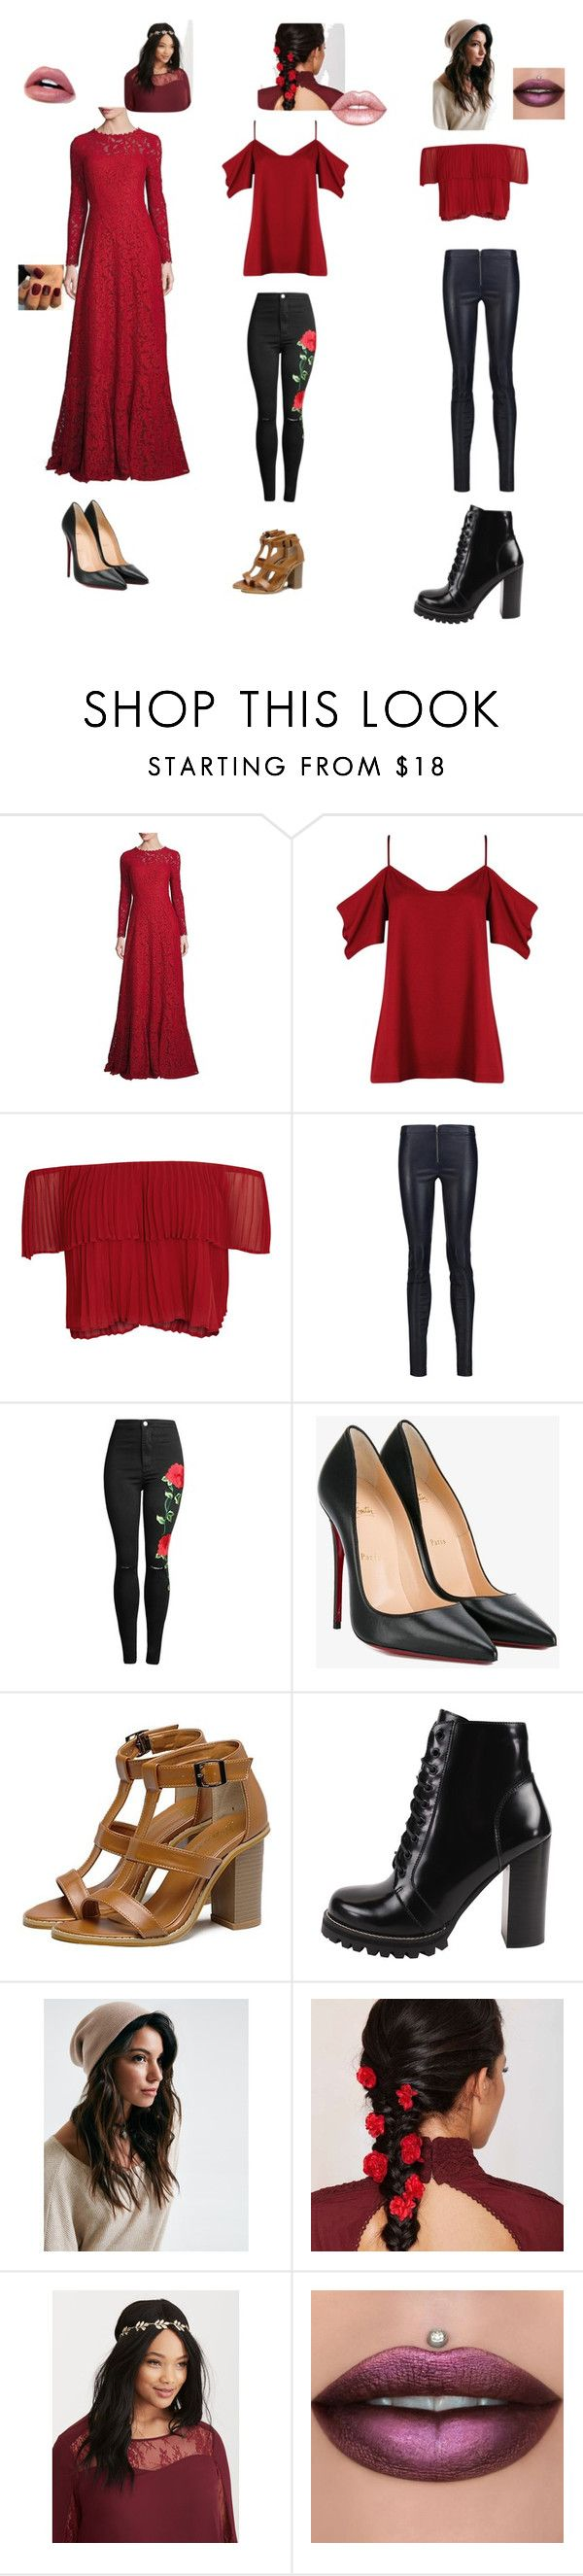 """""""Elena"""" by fangirl-24 on Polyvore featuring ESCADA, Boohoo, Keepsake the Label, Alice + Olivia, Christian Louboutin, Jeffrey Campbell, Torrid, Lime Crime, Prom and rebel"""